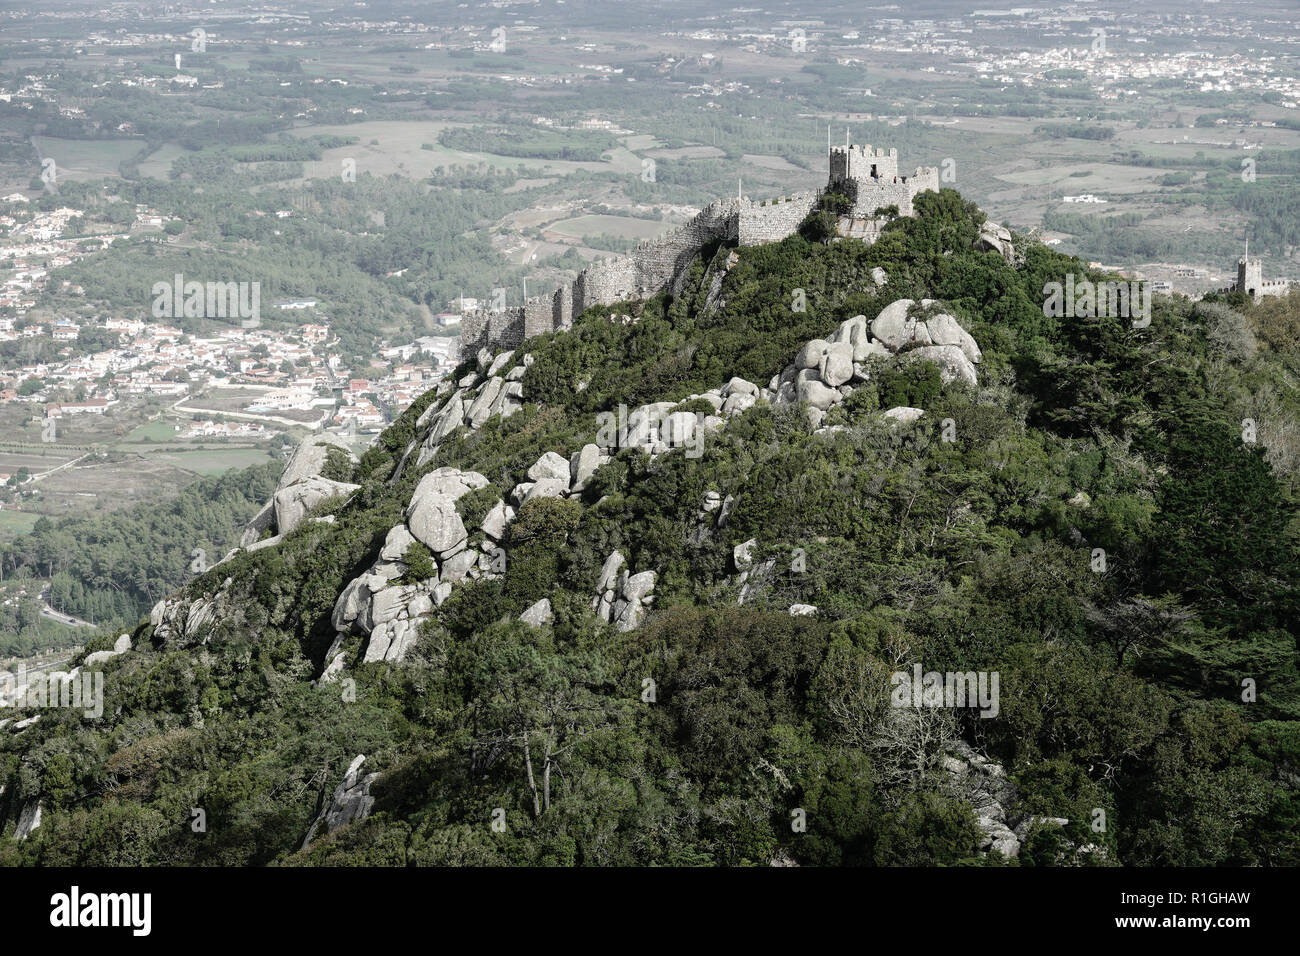 A view of the Castle of the Moors, Castelo dos Mouros, a hilltop medieval castle located in the central Portuguese civil parish of Santa Maria e São M - Stock Image